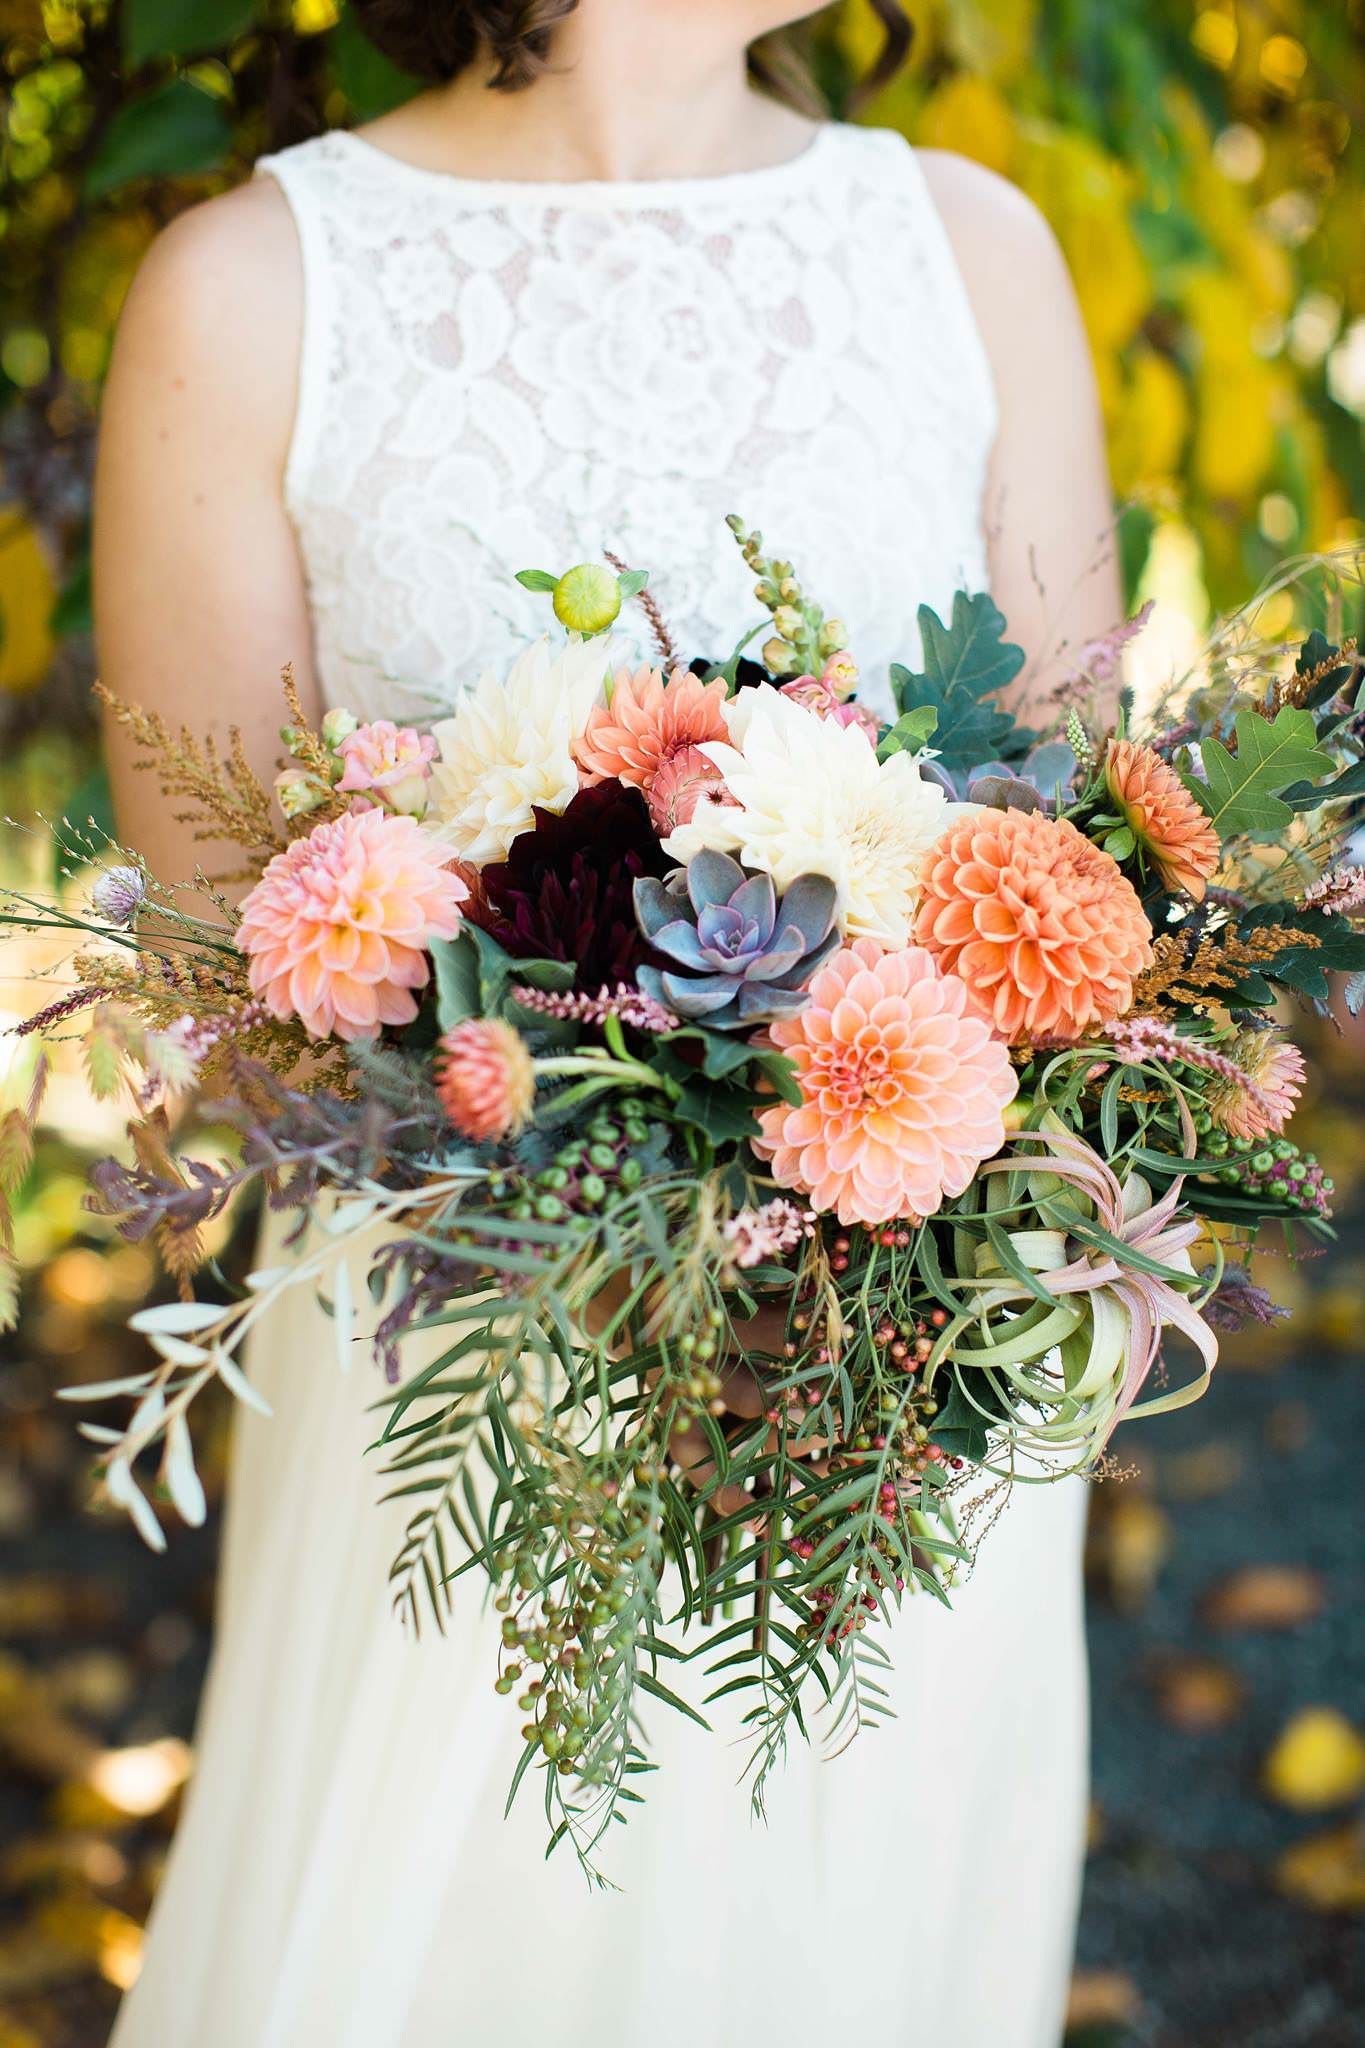 Bridal Bouquets The Top 20 Bouquet Trends For 2019 (mit